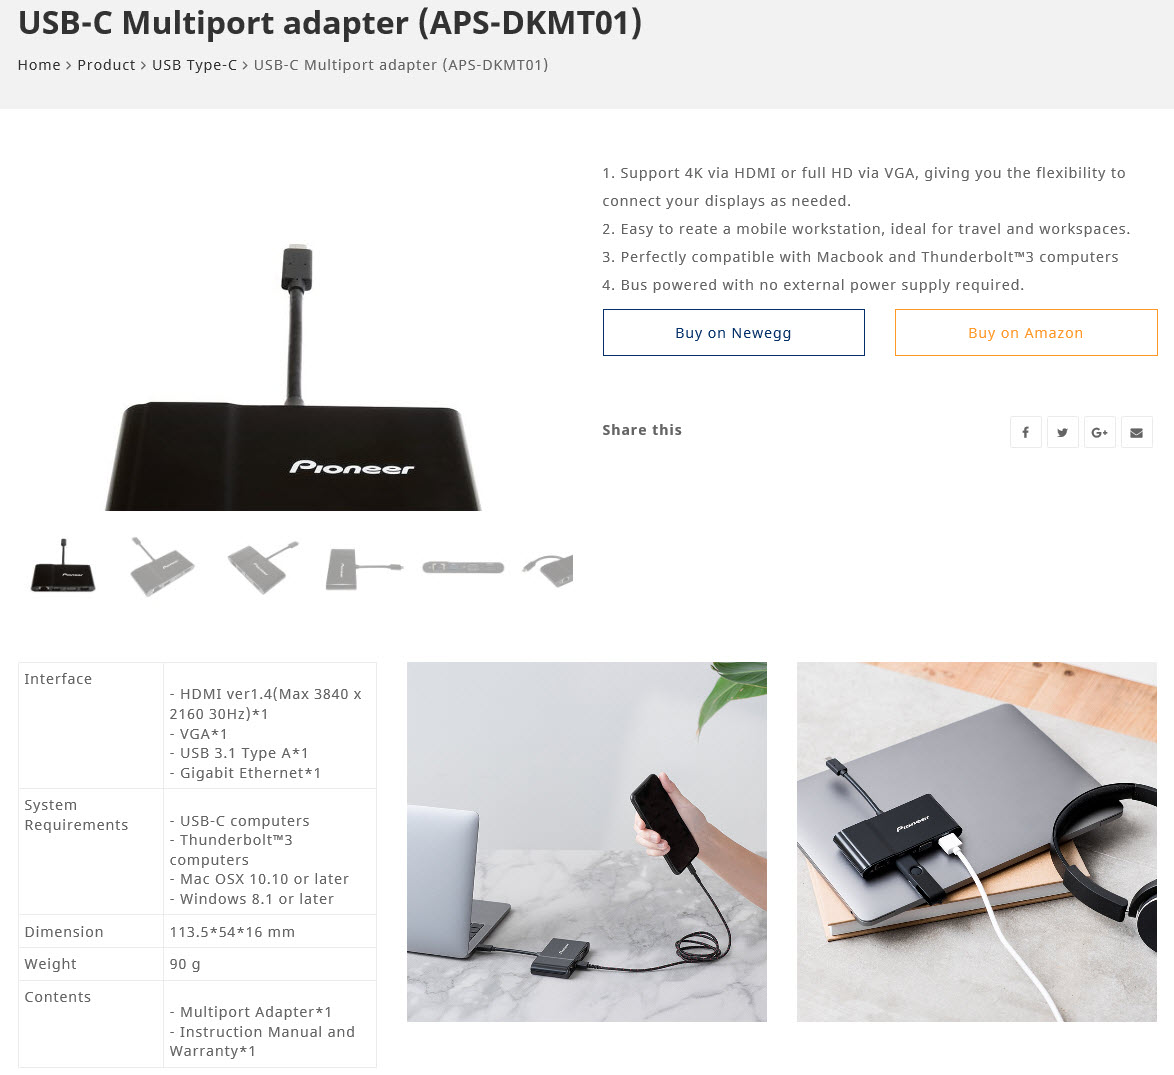 2018 03 27 22 19 08 Pioneer USB C Multiport adapter APS DKMT01 Review